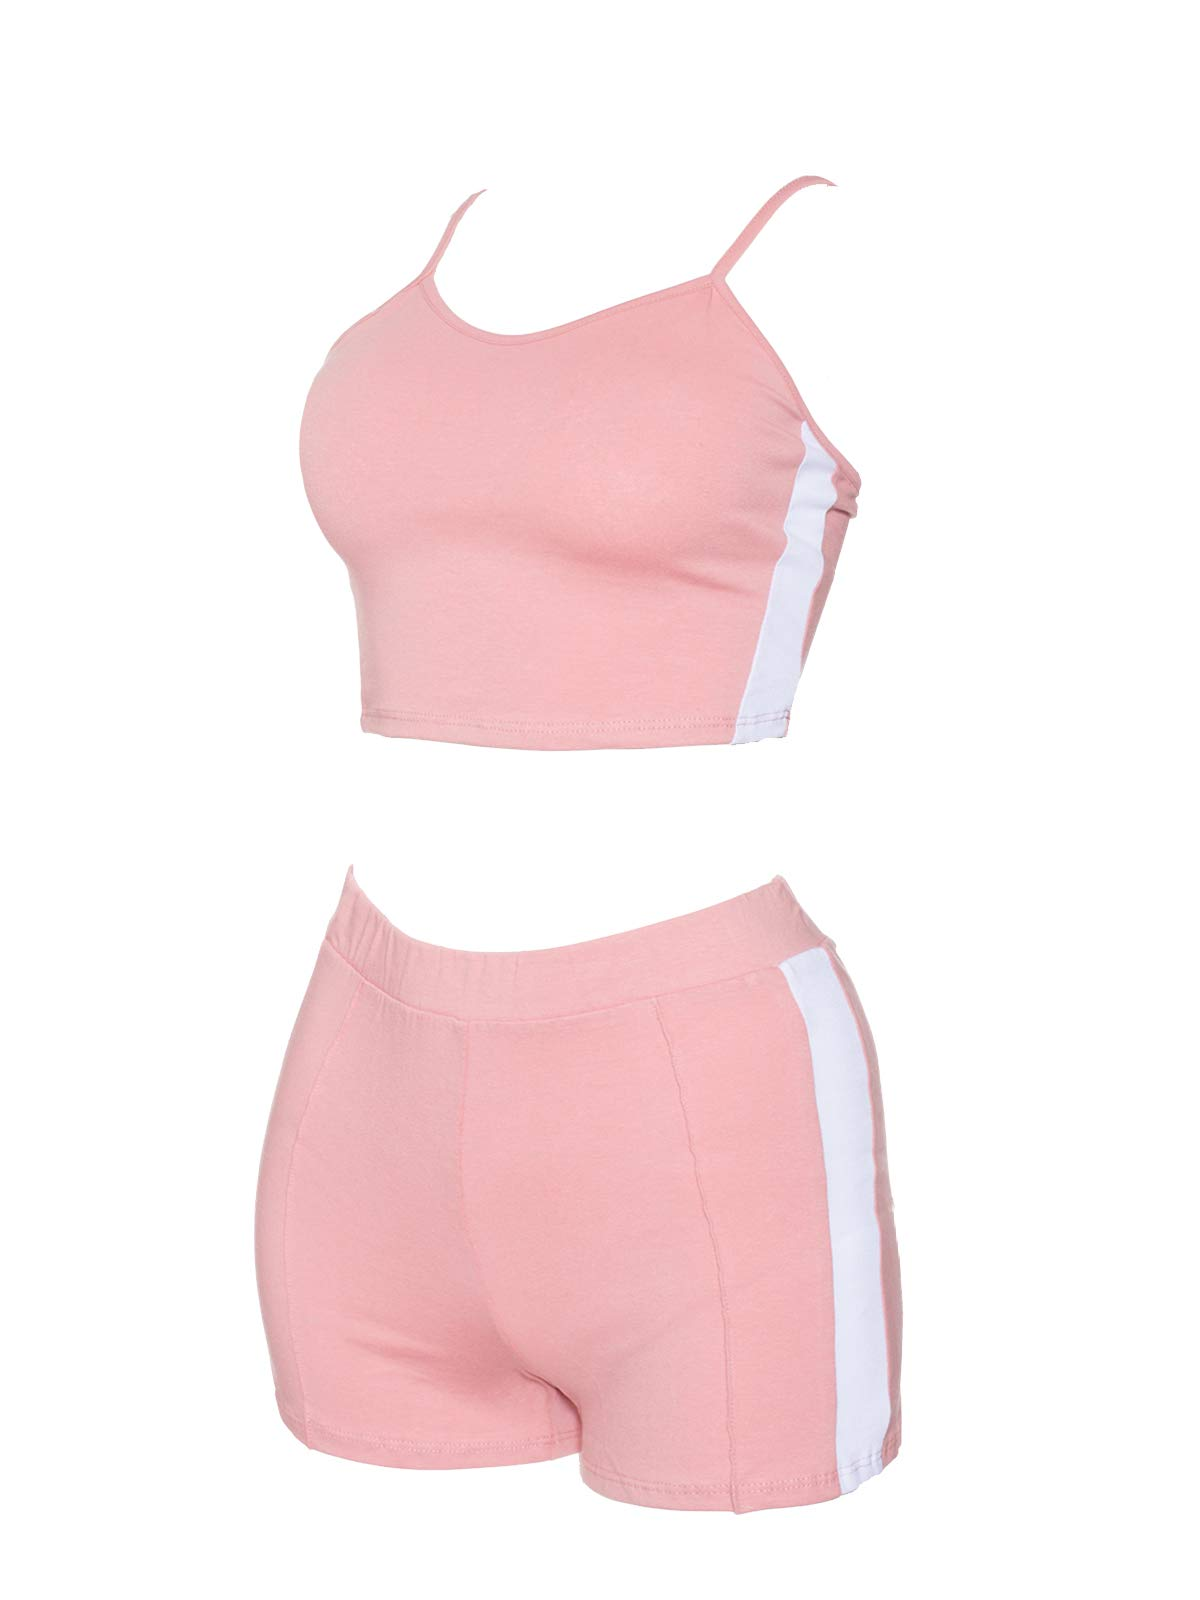 Instar Mode Women's Crop Shirts Top with High Waist Shorts Sets Tracksuit- Made In USA Mauve S